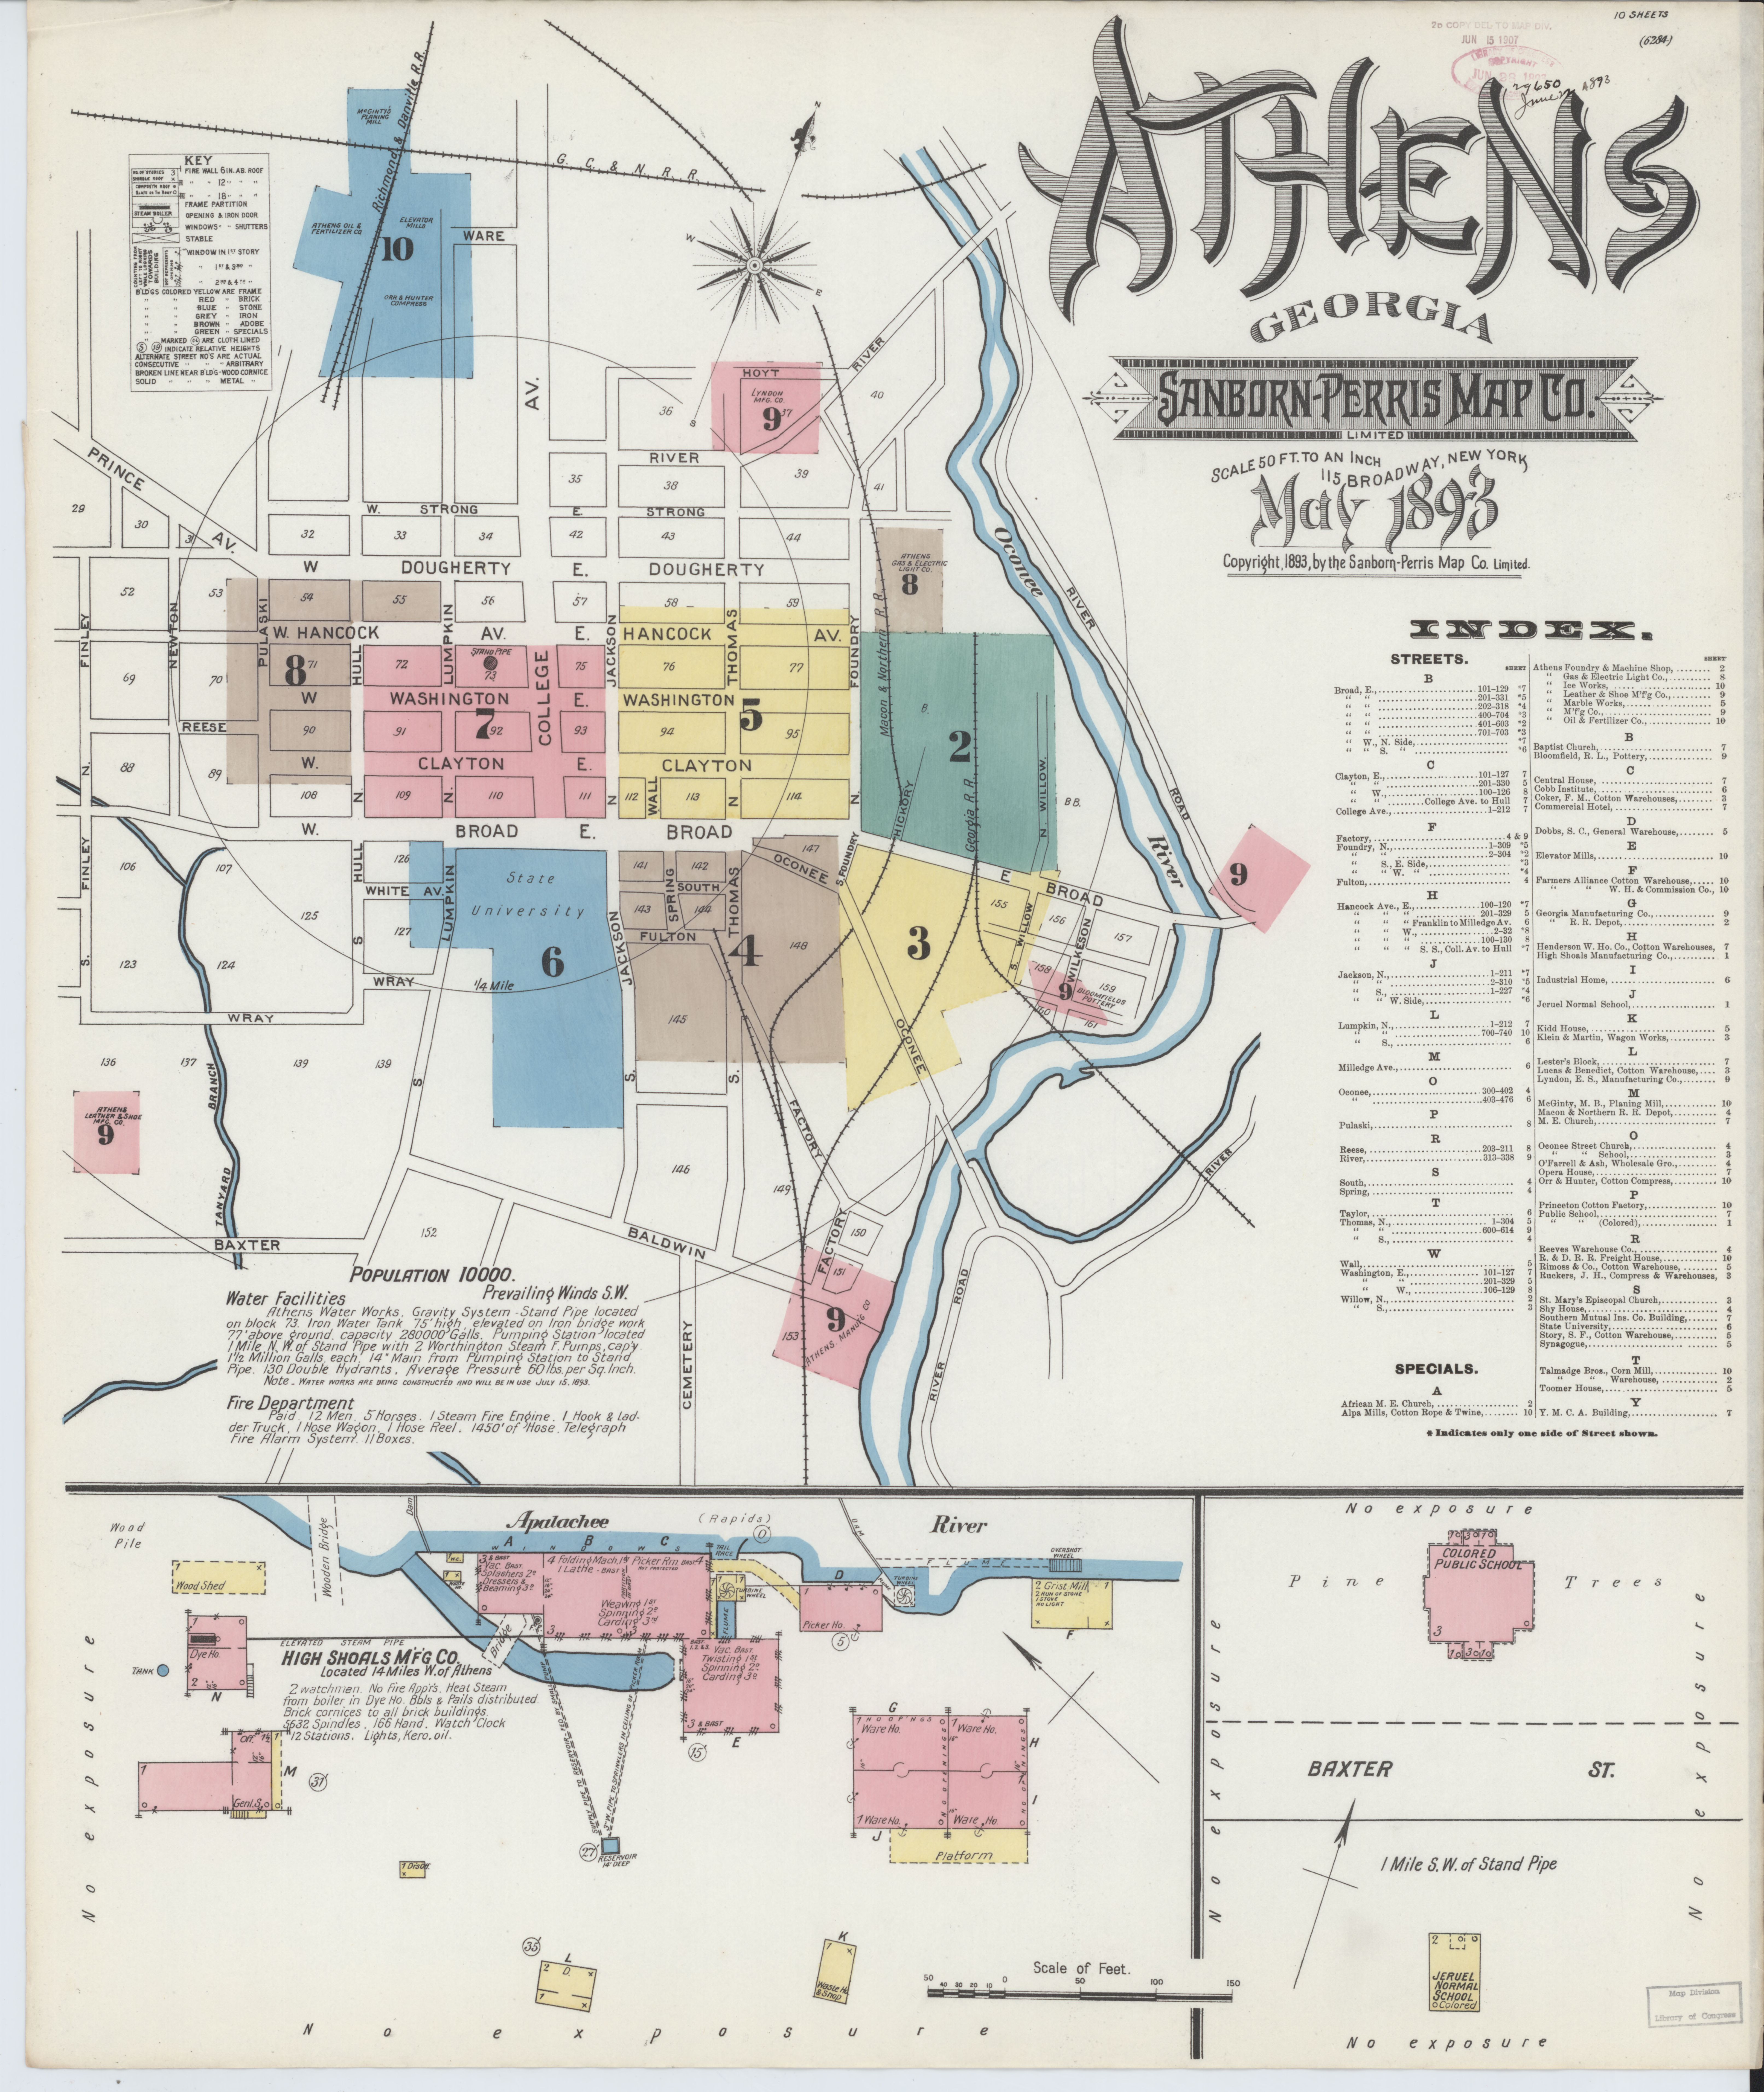 Map Of Georgia Fire.File Sanborn Fire Insurance Map From Athens Clarke County Georgia